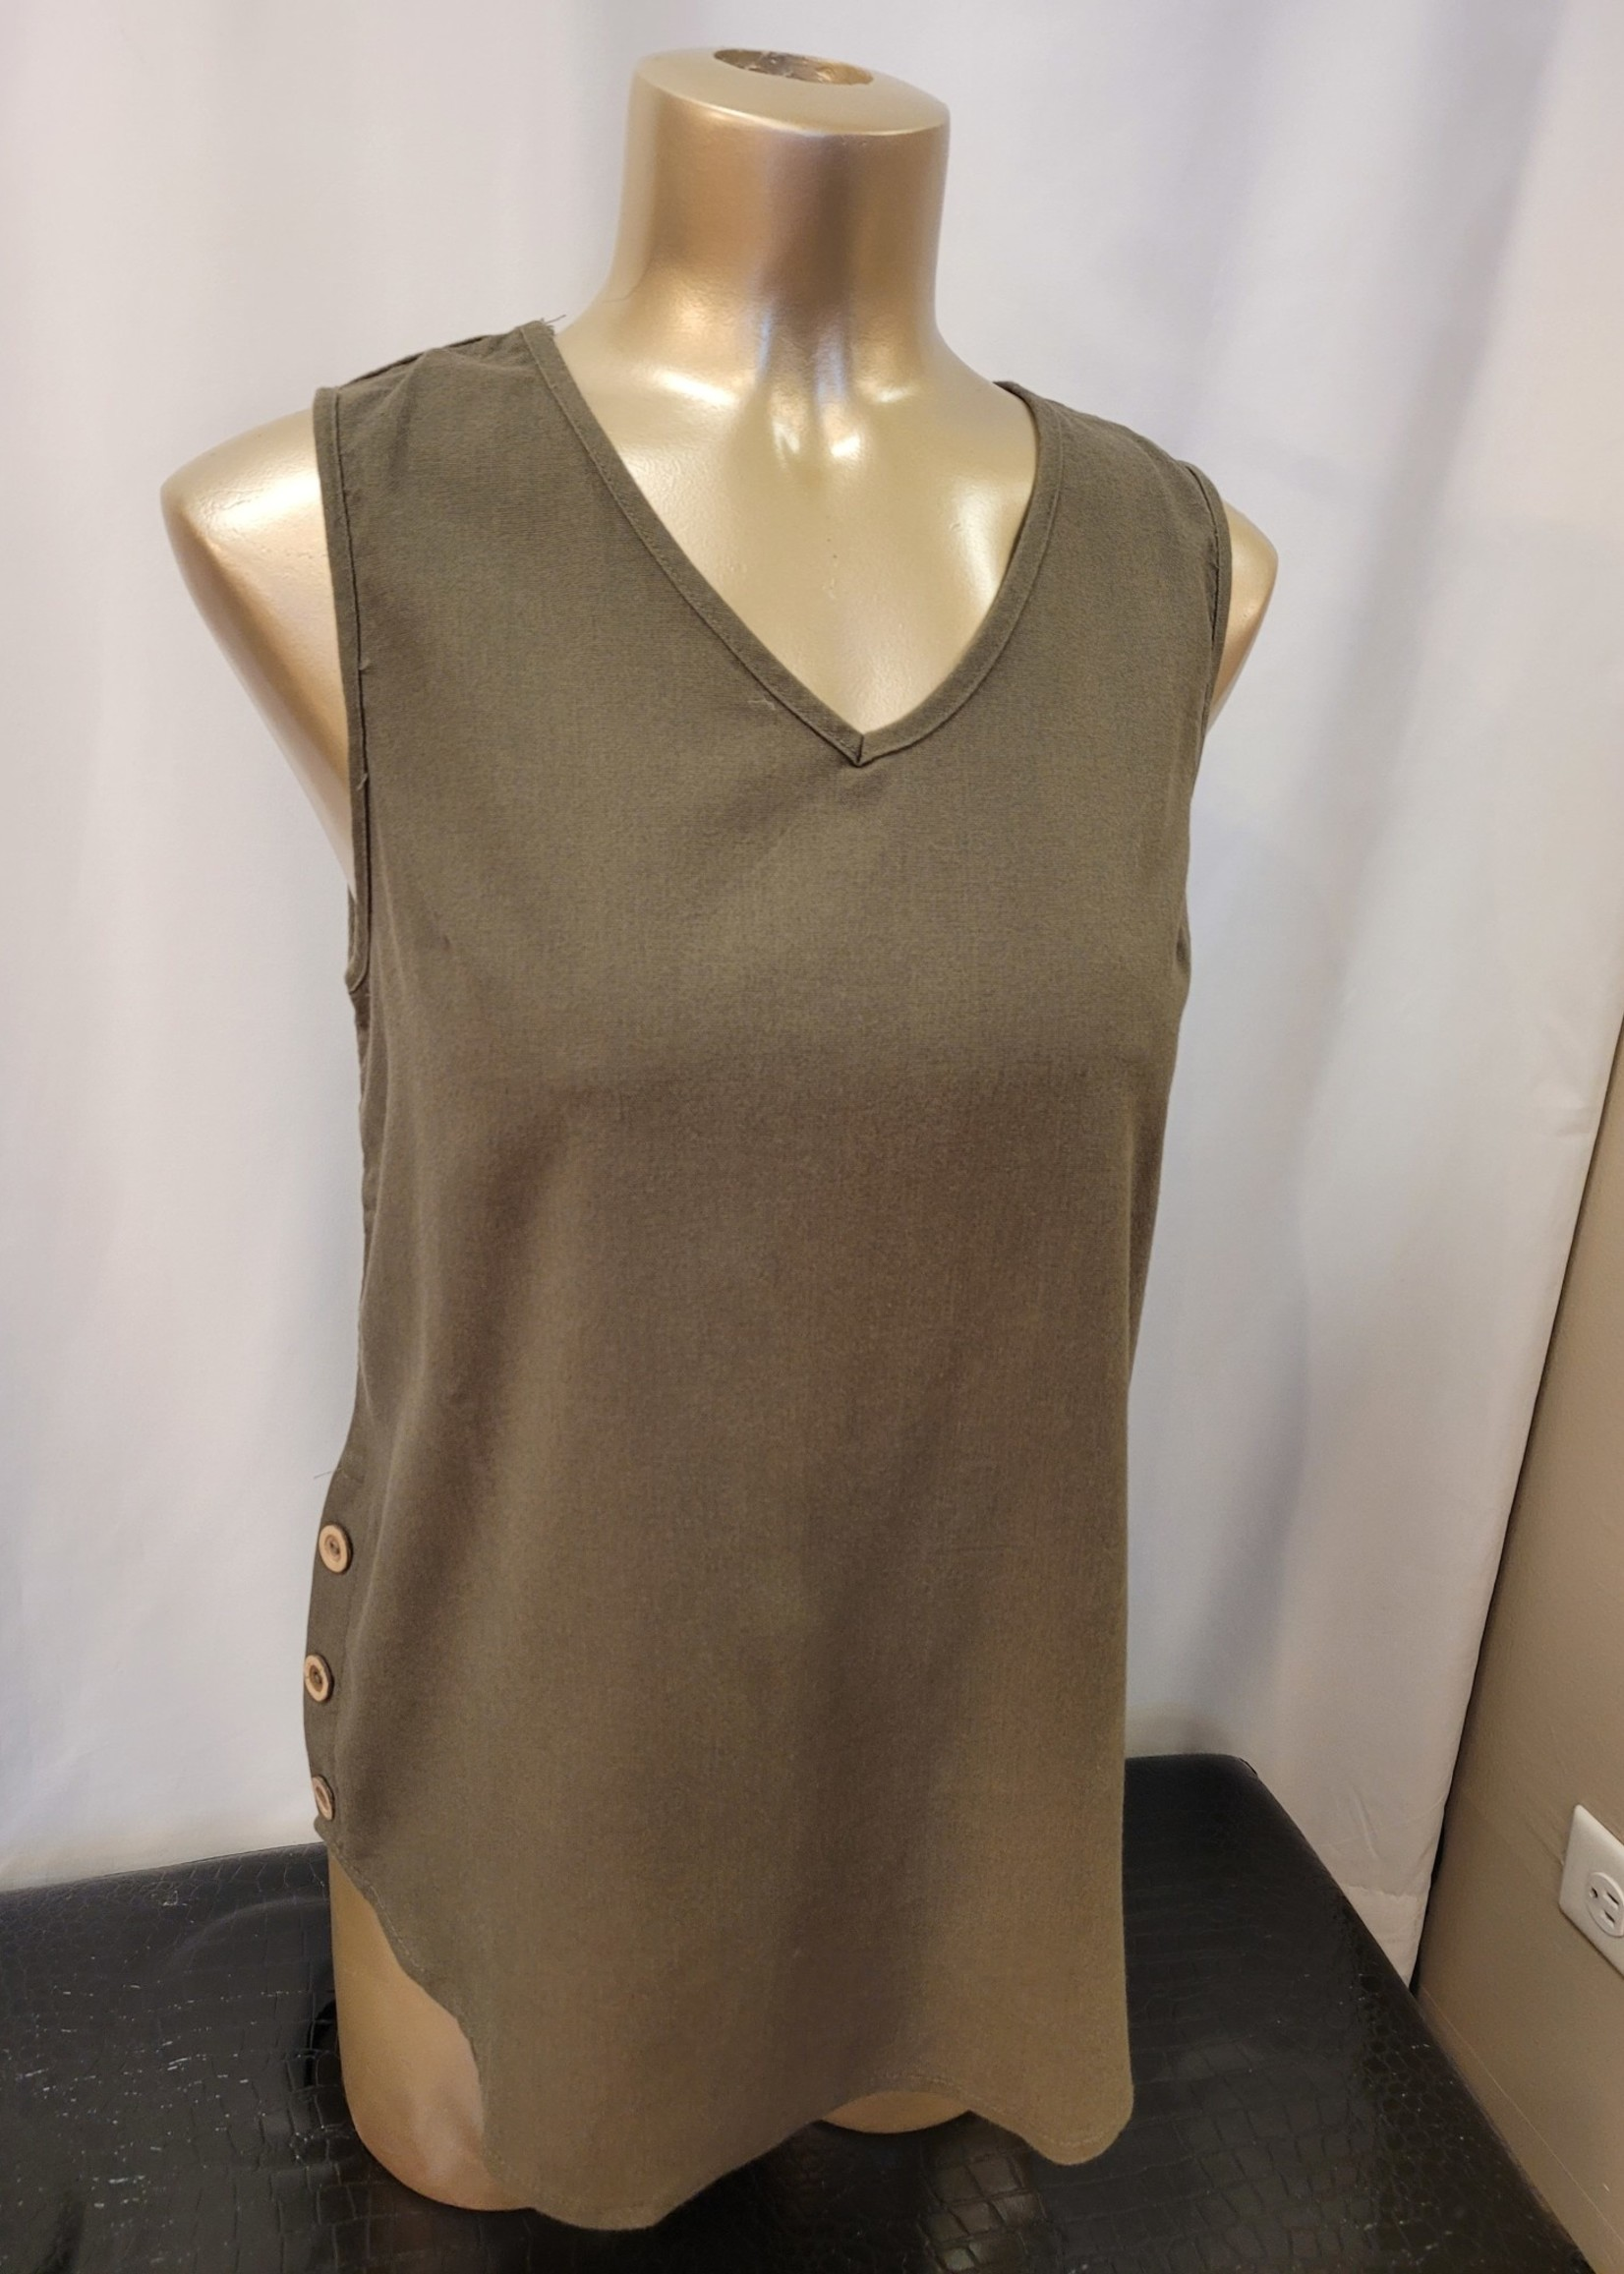 DKR & Co Sleveless tank w side and back buttons